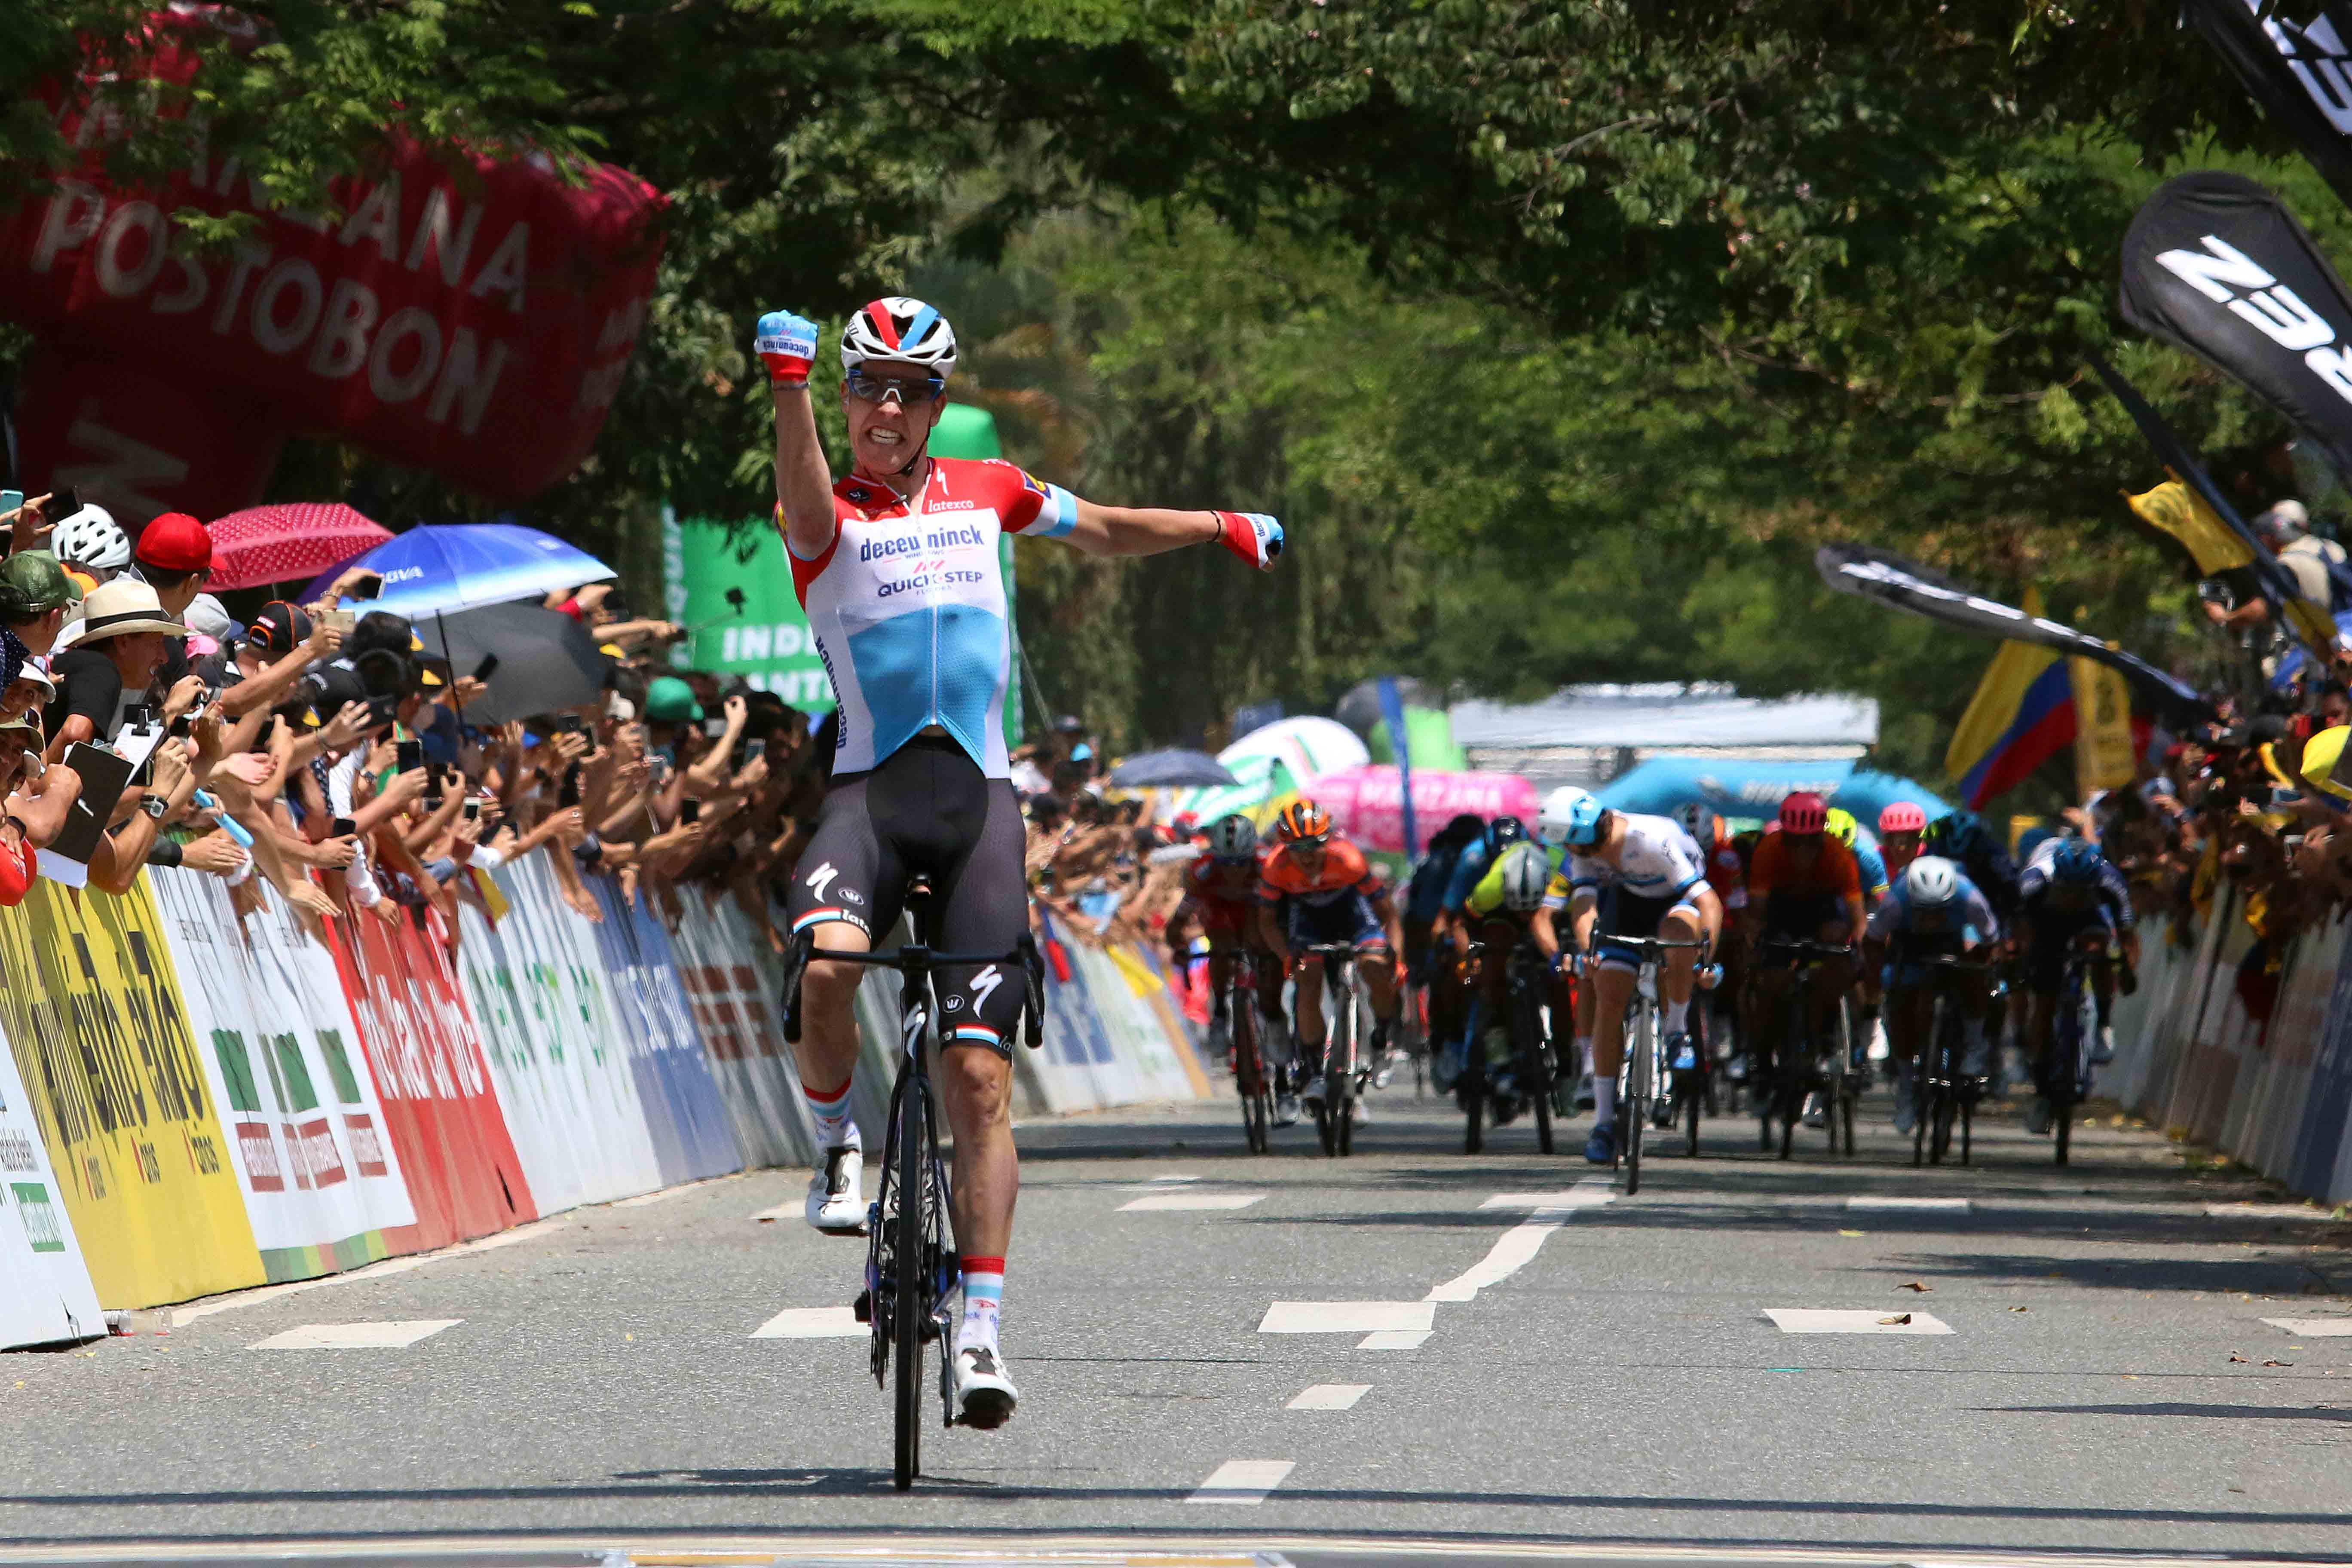 Bob Jungels takes stage win and moves into overall lead at